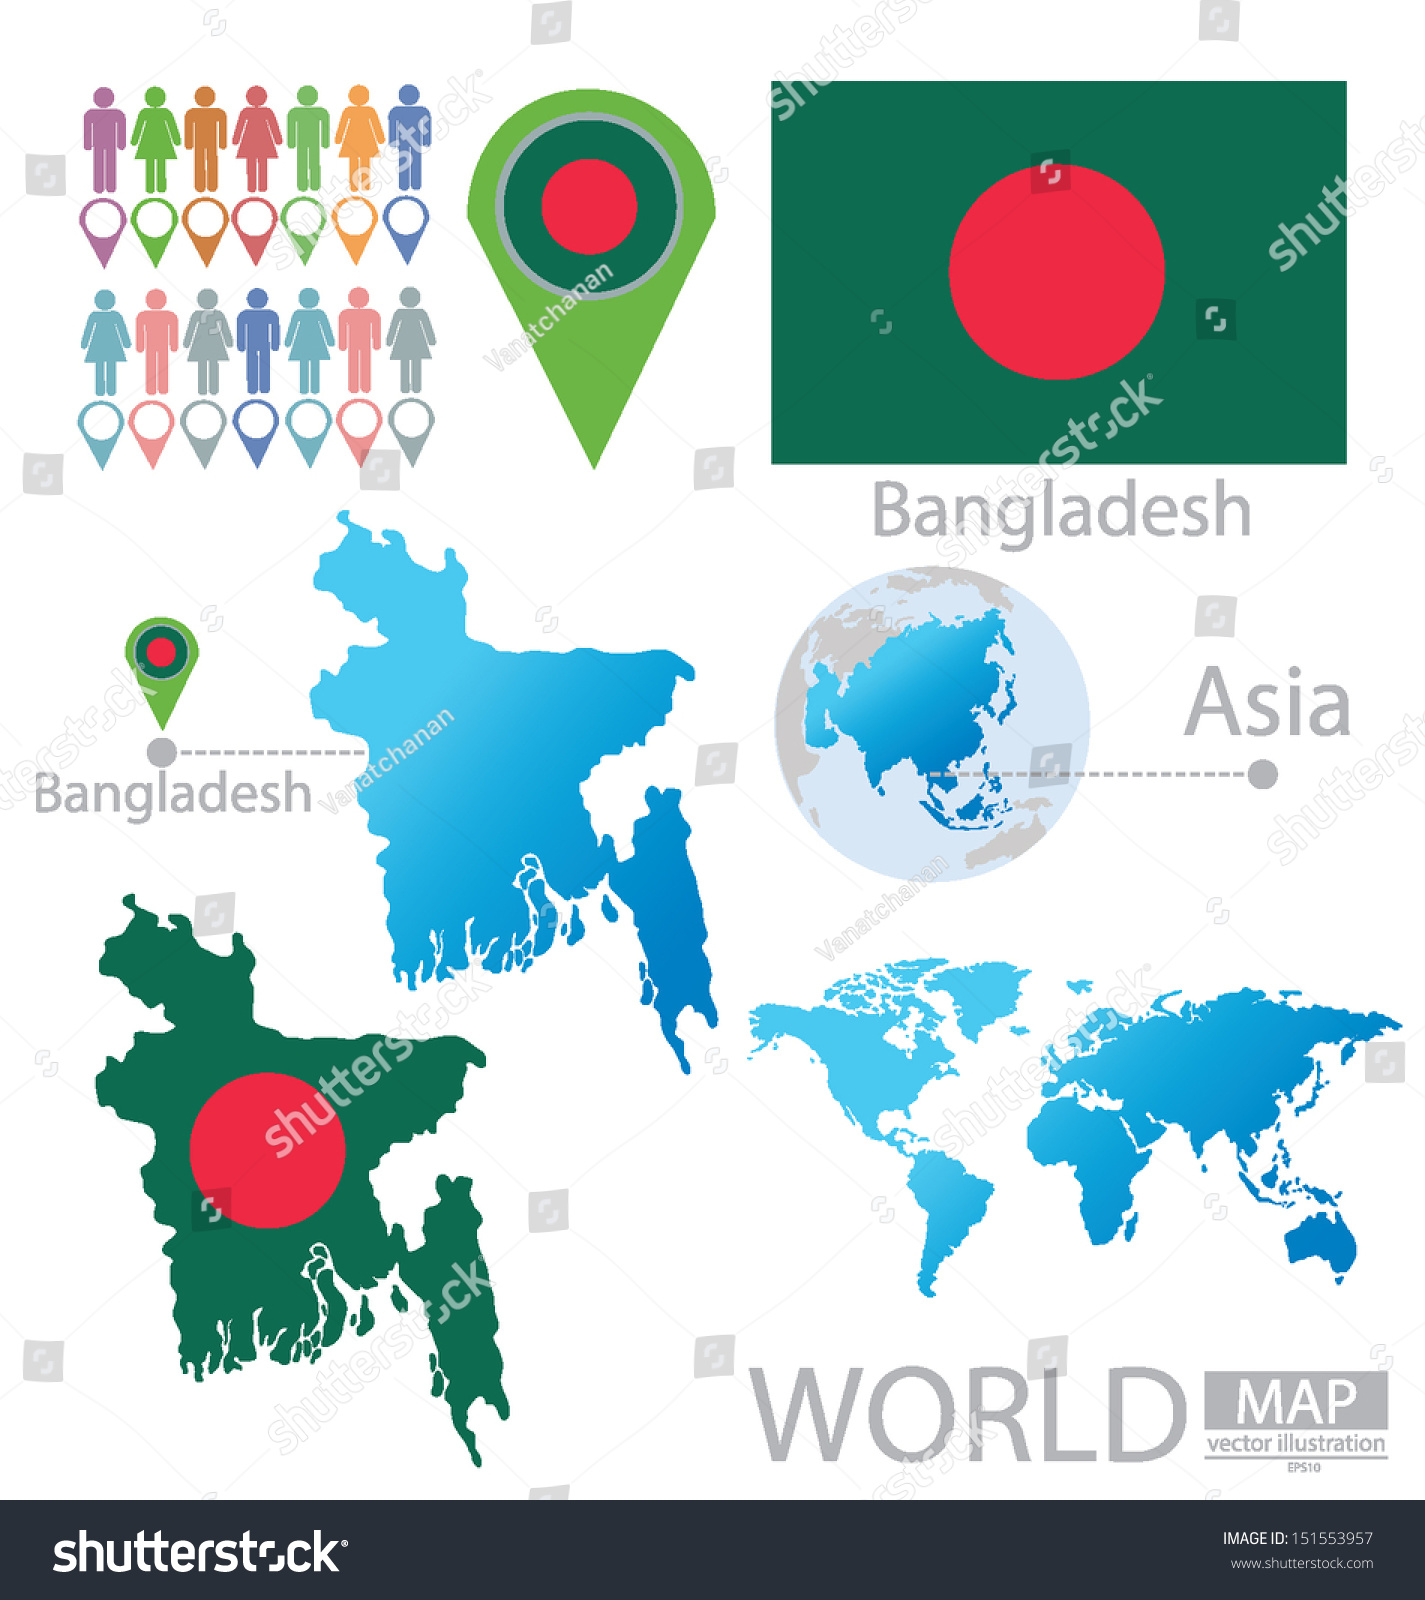 Bangladesh flag asia world map vector stock vector 151553957 asia world map vector illustration gumiabroncs Images